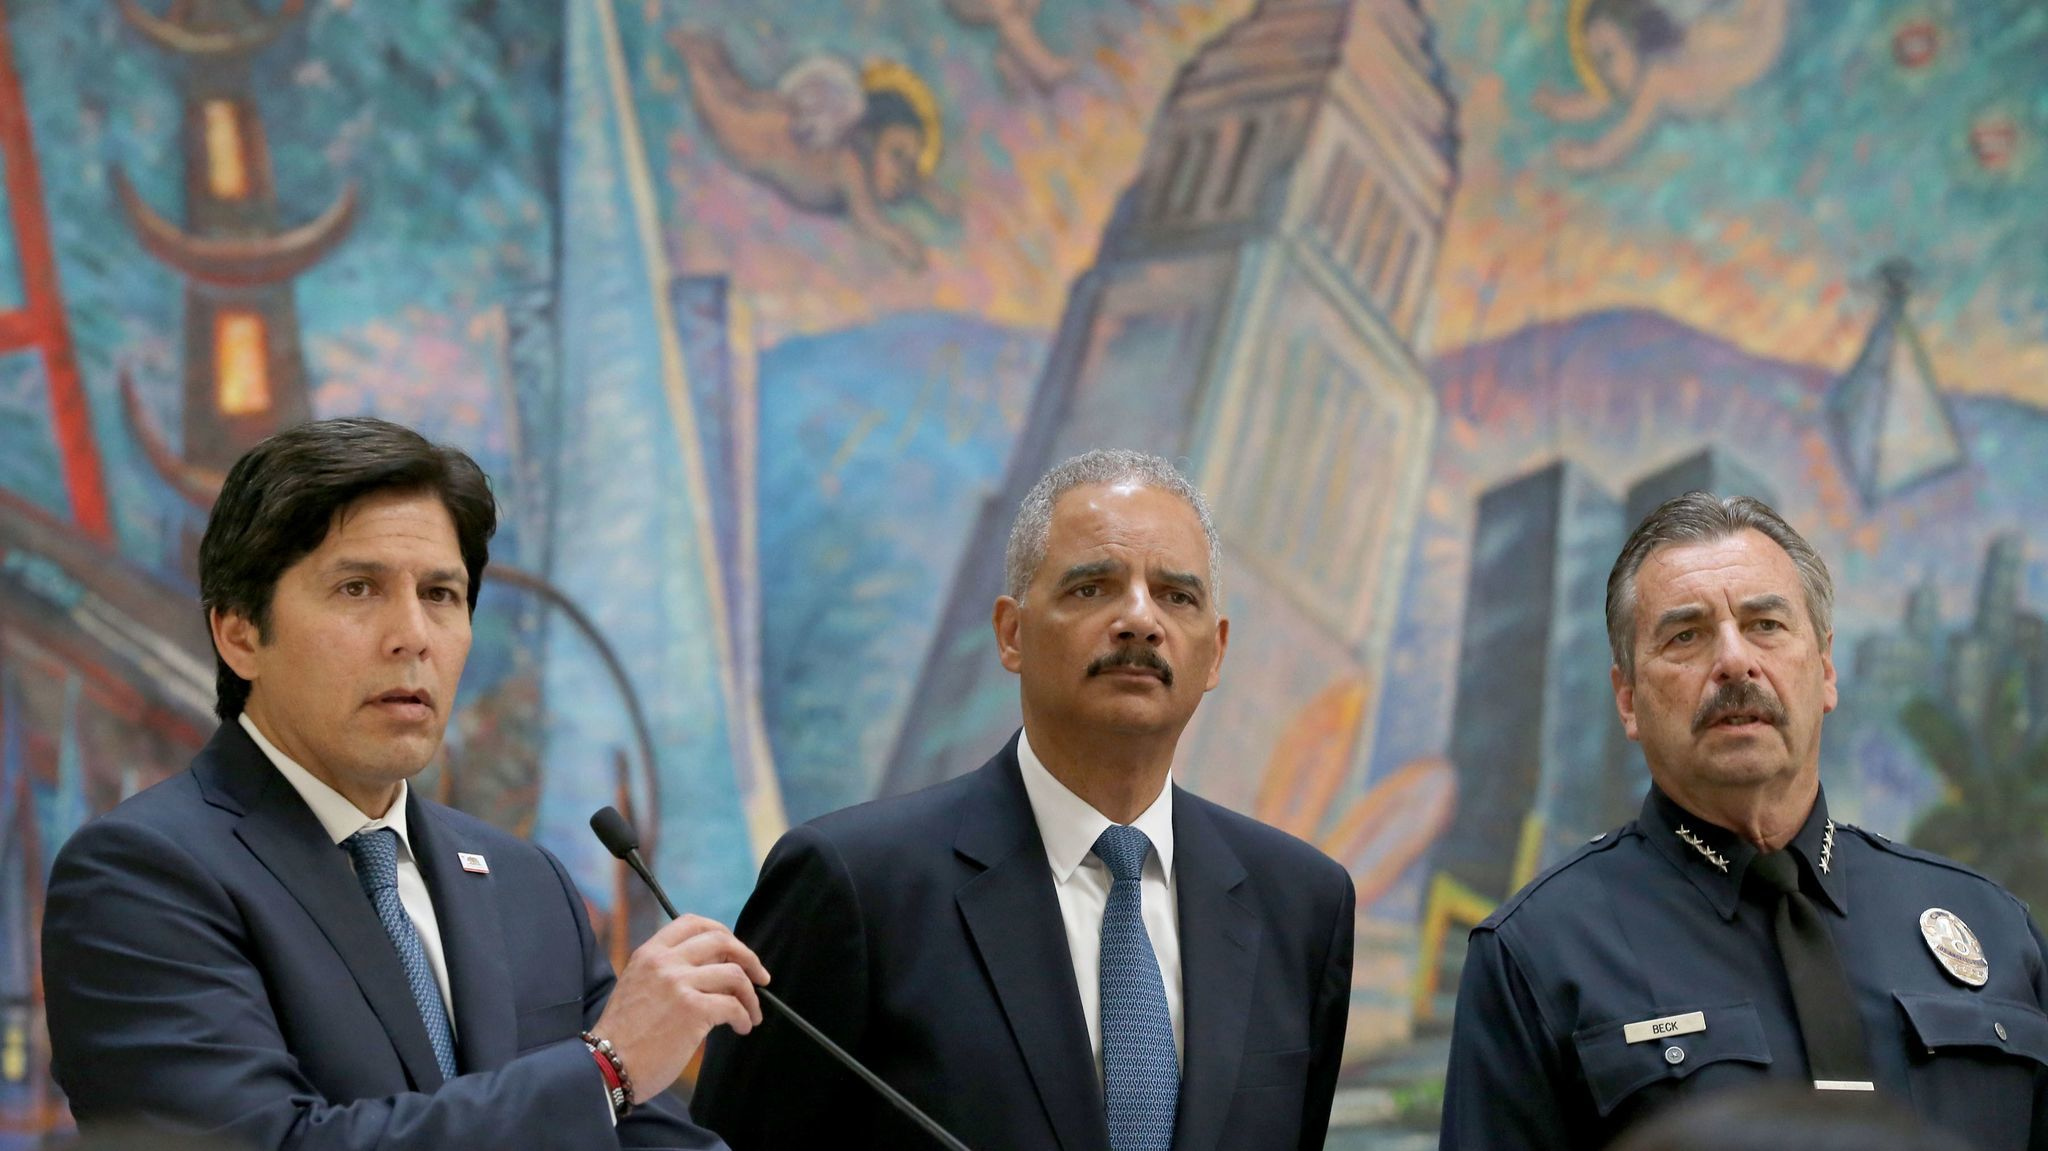 Senate leader Kevin de León, left, answers questions during a news conference to address the so-called sanctuary state bill while Former U.S. Atty. Gen. Eric Holder, center, and LAPD Chief Charlie Beck listen.